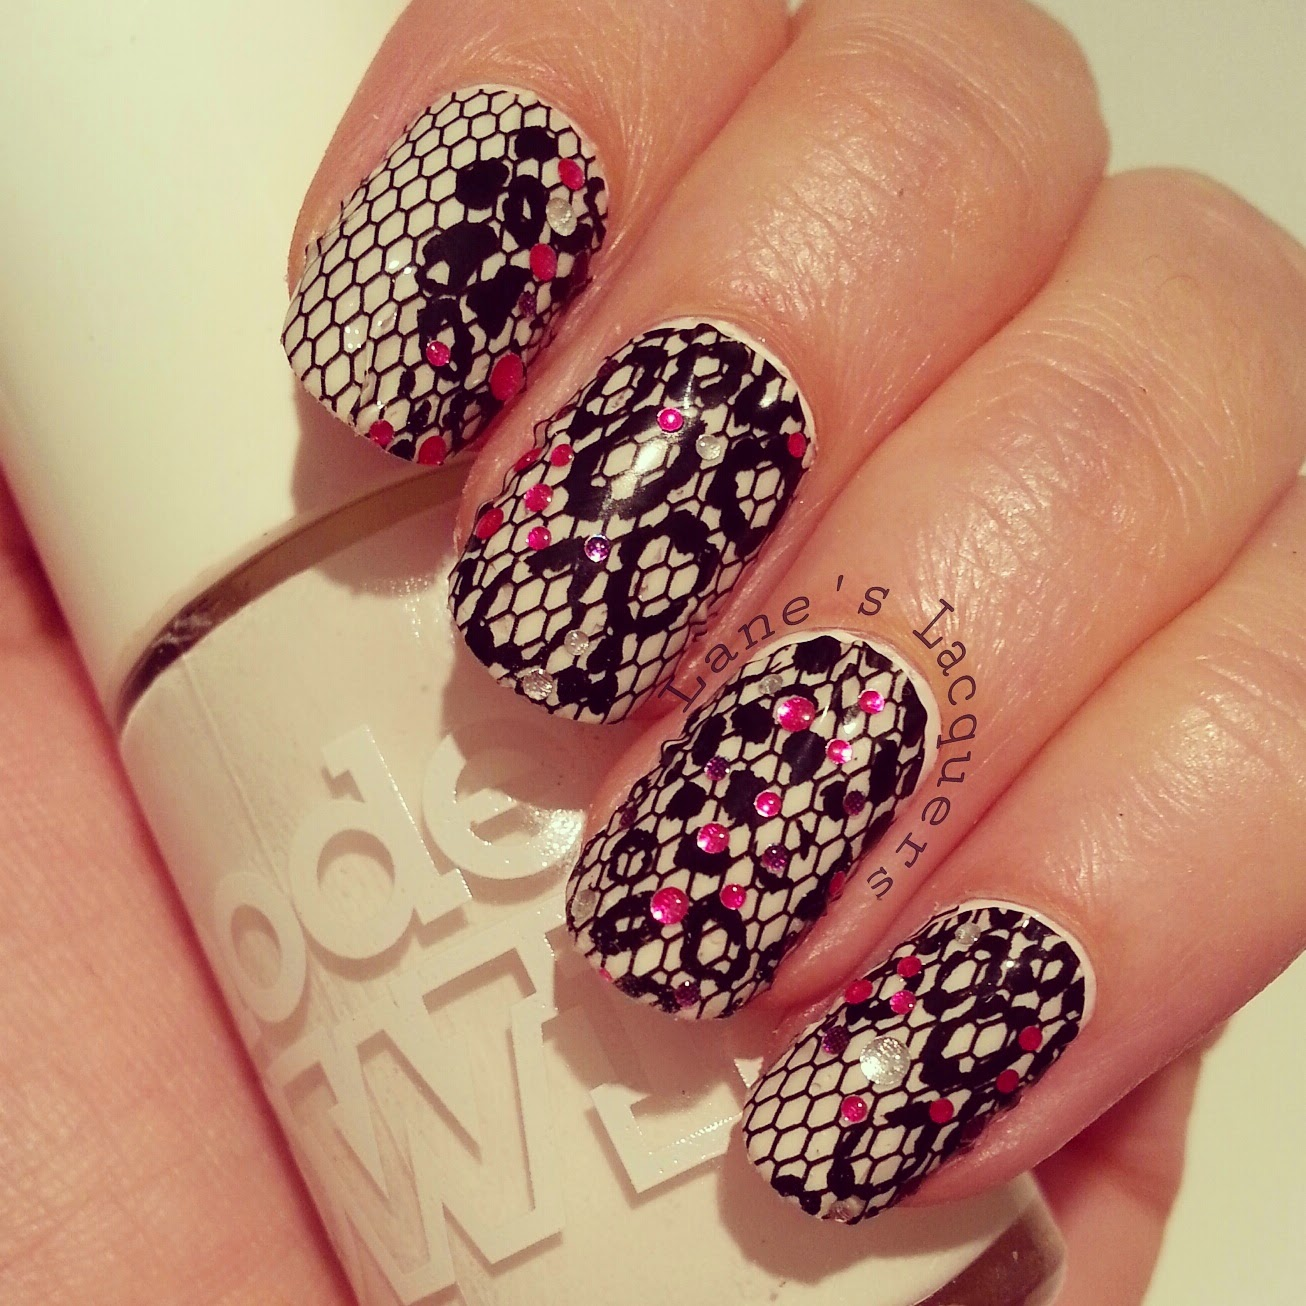 black-and-white-avon-leopard-print-nail-stickers-with-sparkle (2)